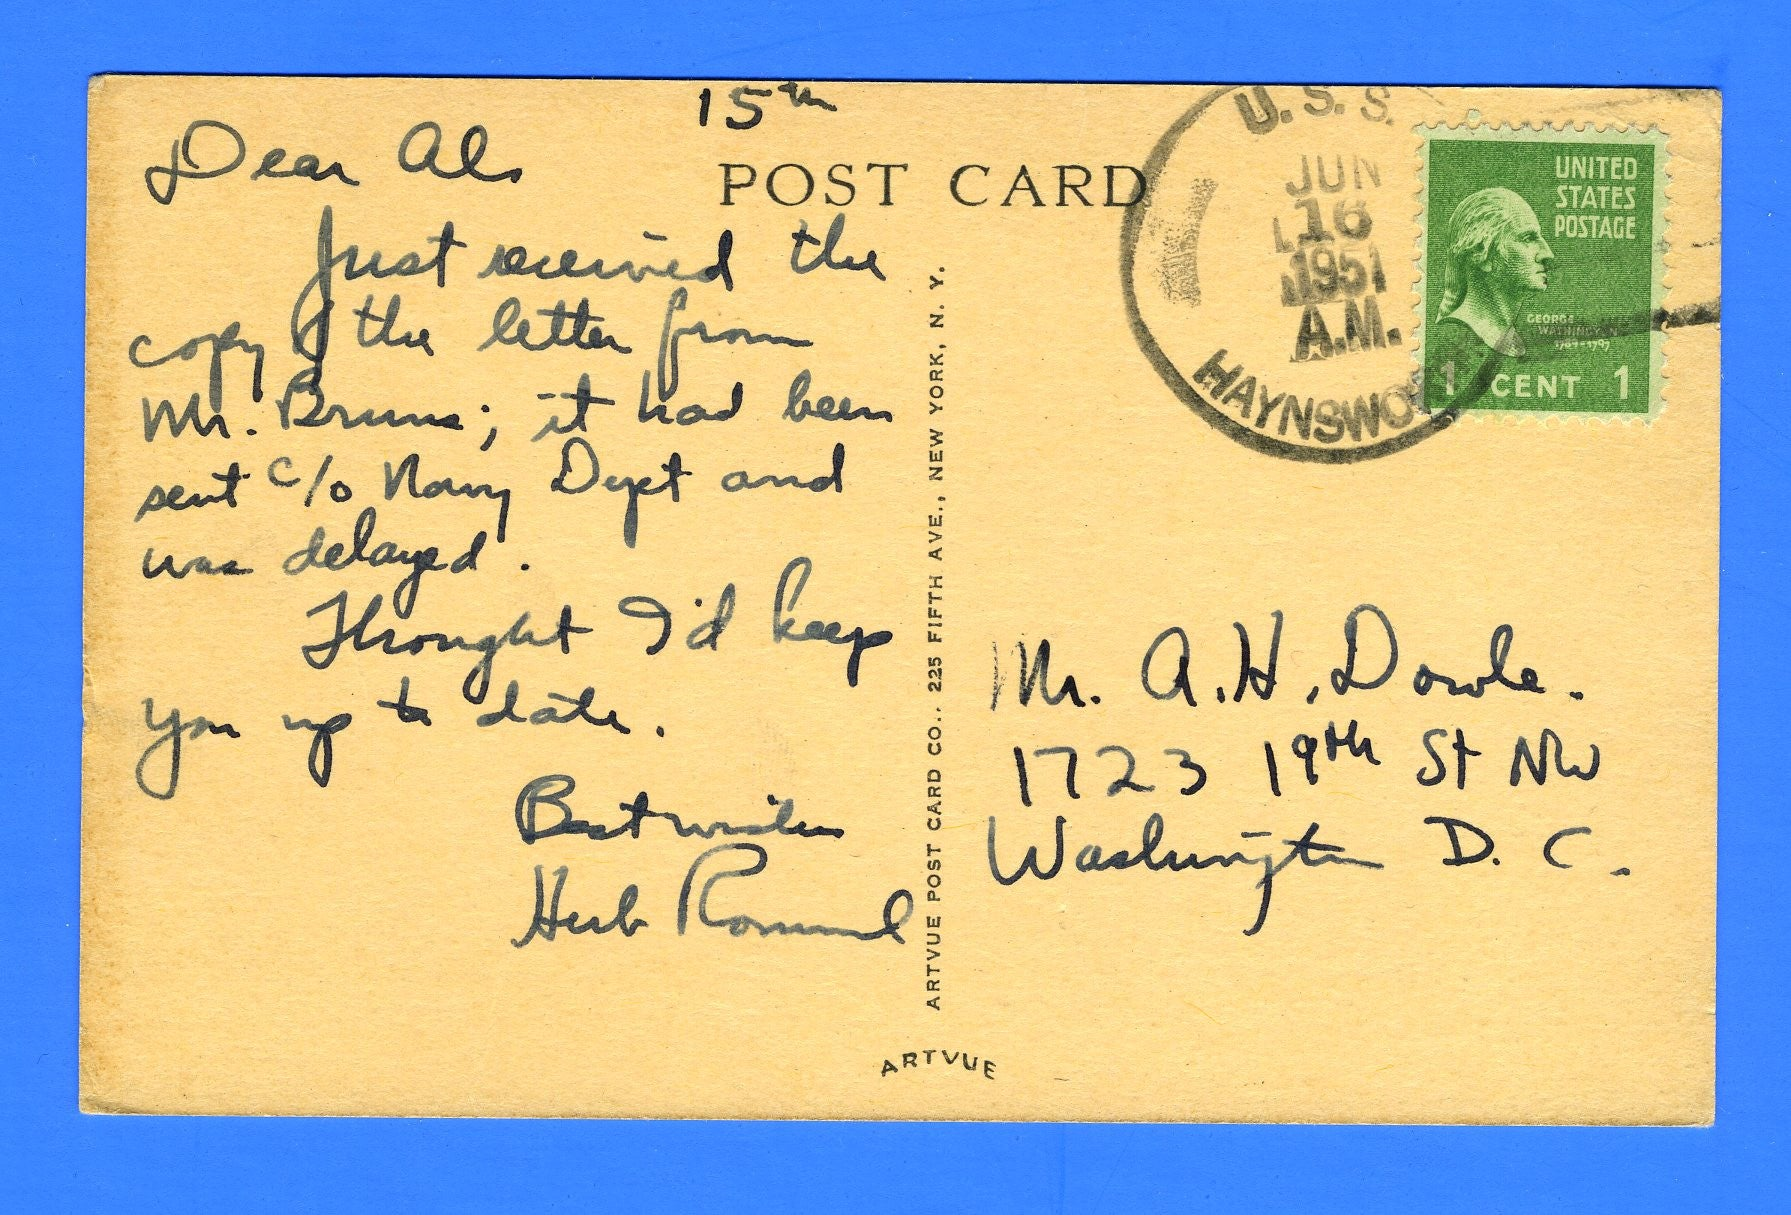 USS Haynsworth DD-700 Sailor's Mail June 16, 1951 - On Postcard of Haynsworth